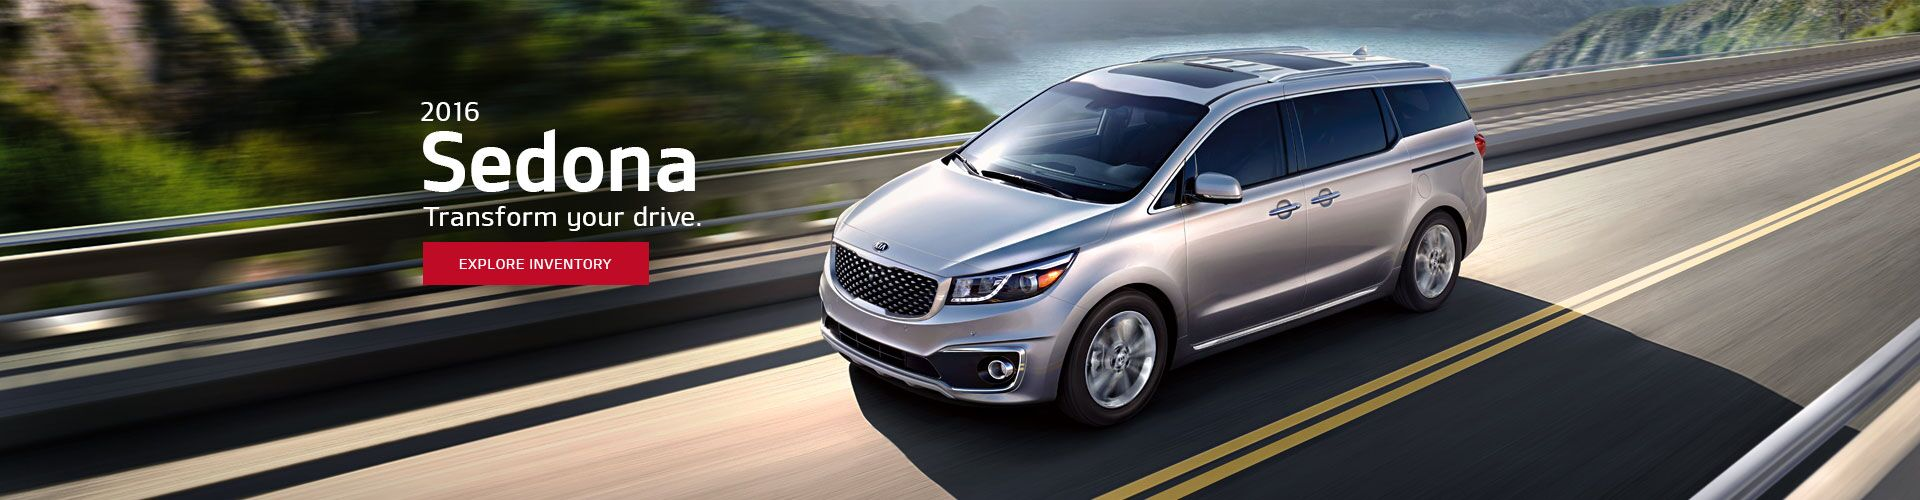 New Kia Sedona at Spitzer Kia Cleveland